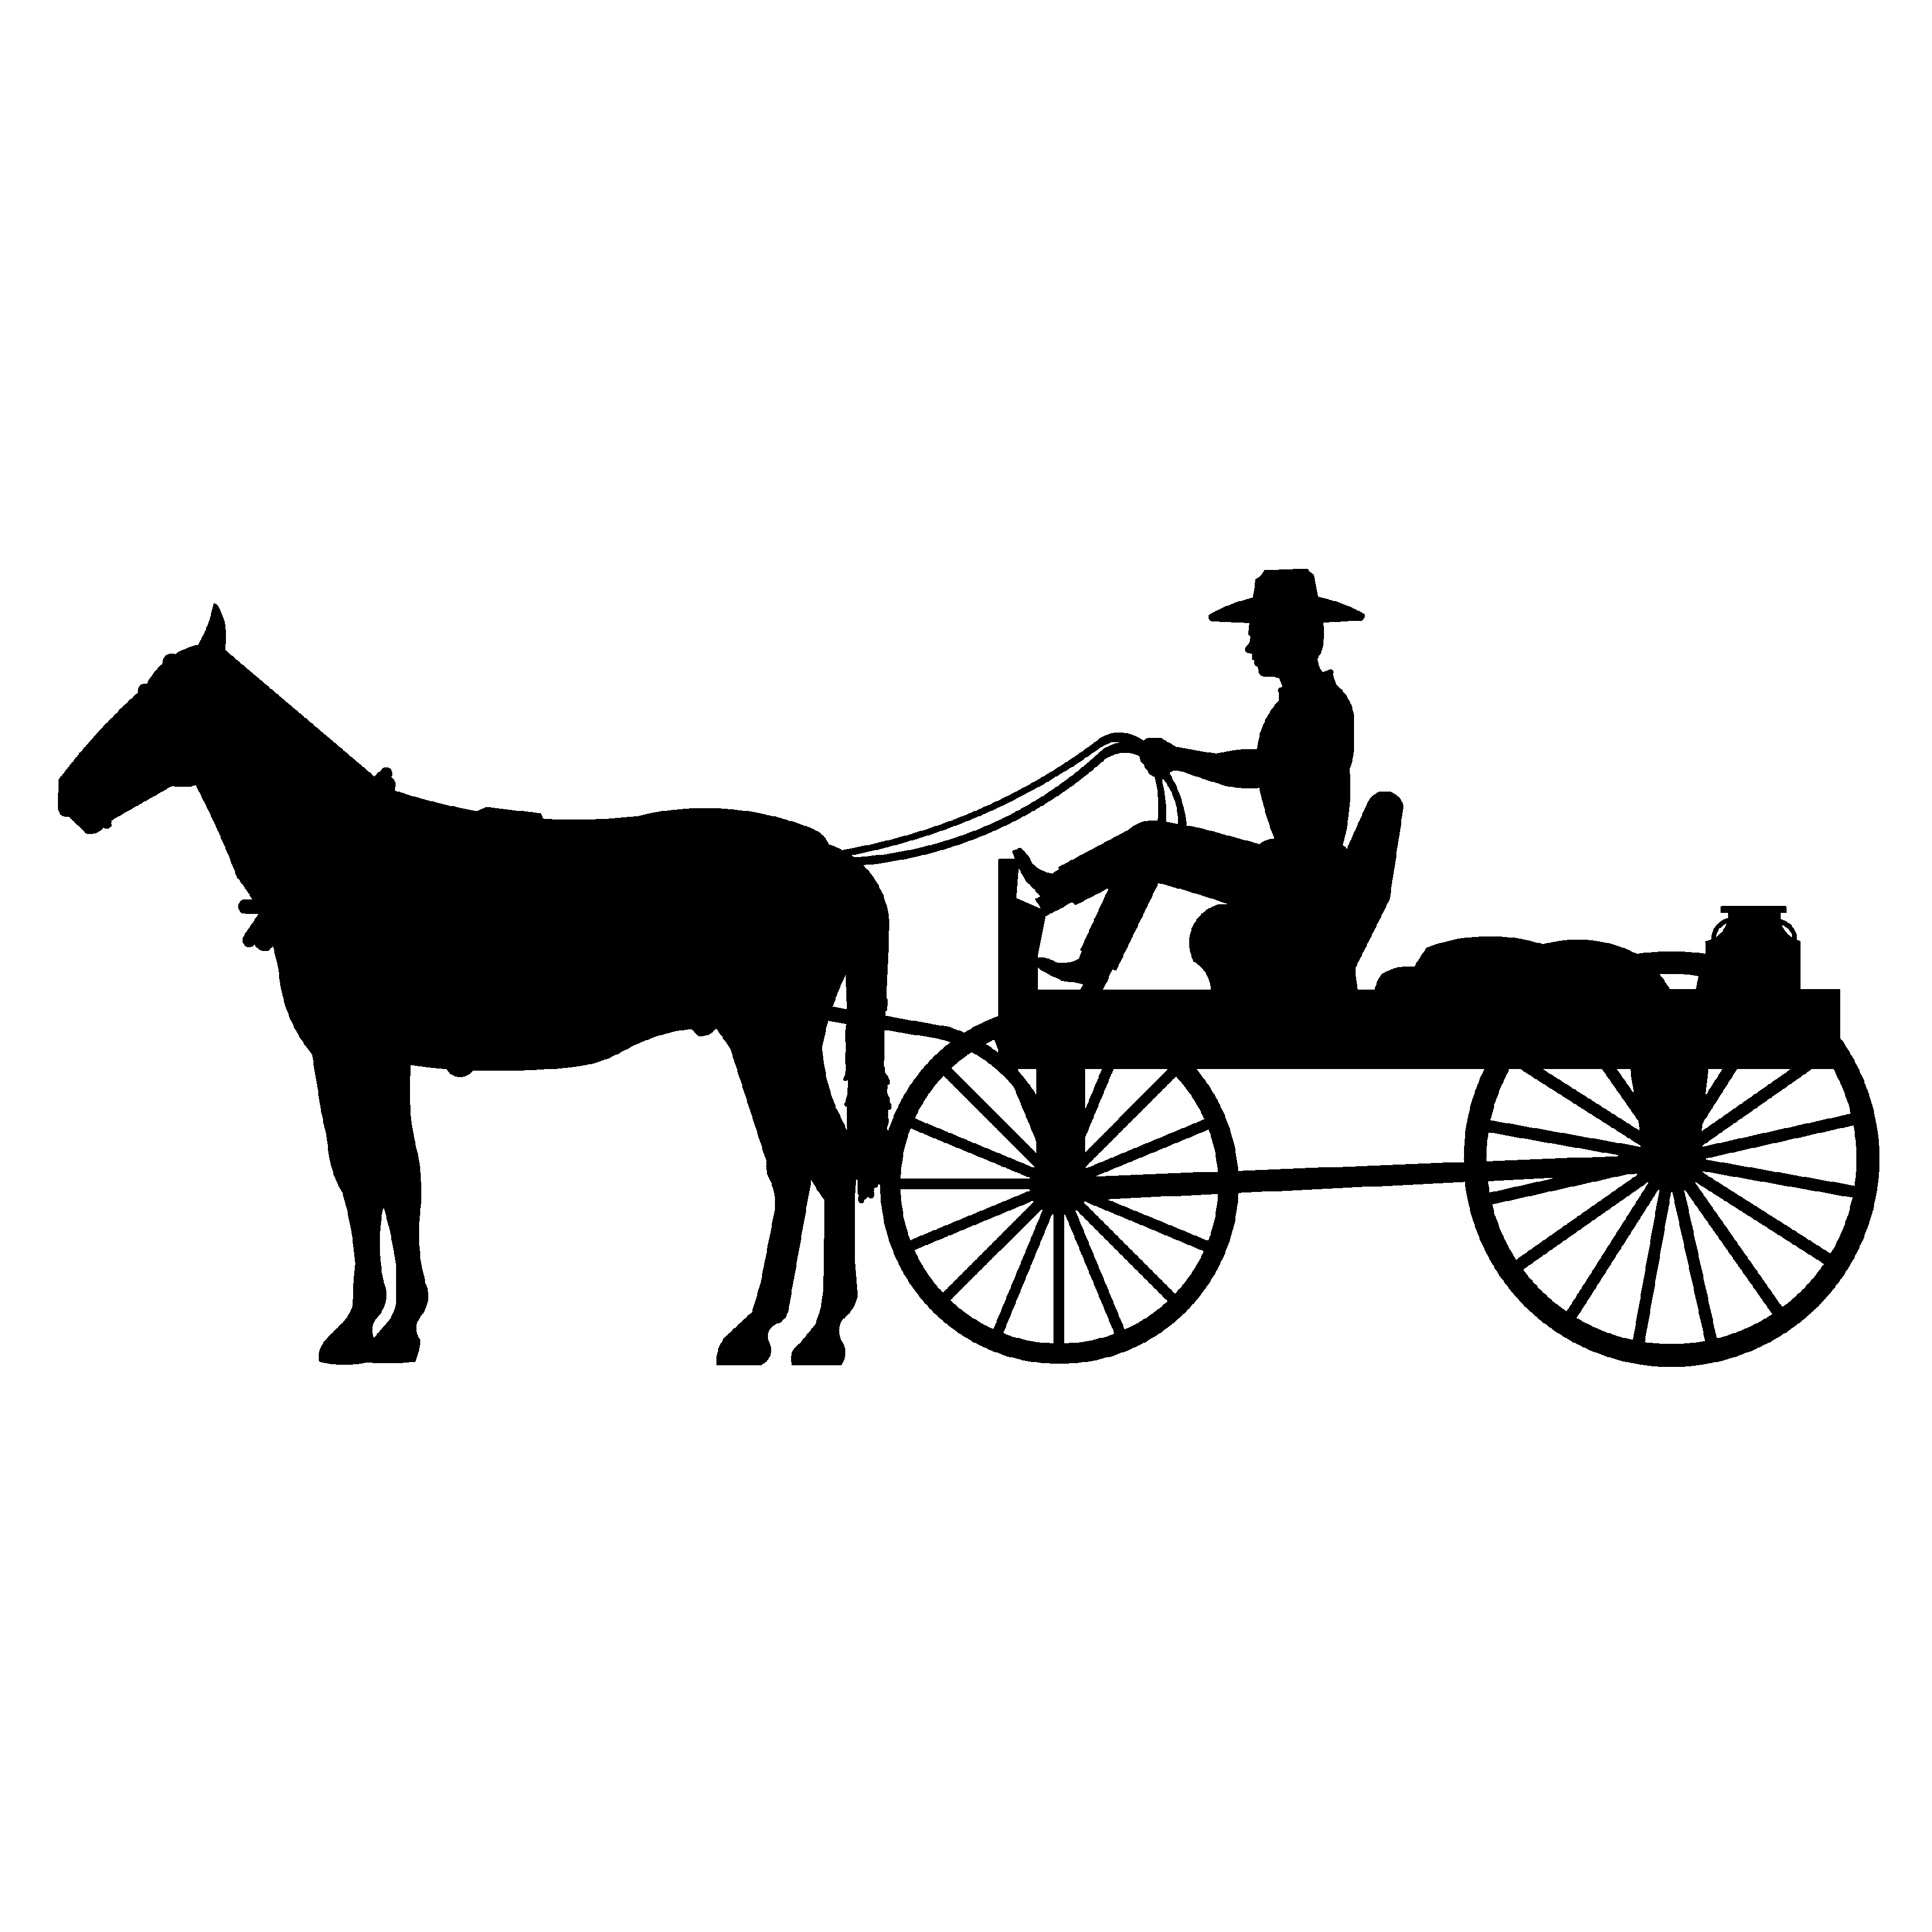 Horse-drawn Carriage clipart silhouette #1 - Horse Carriage PNG HD